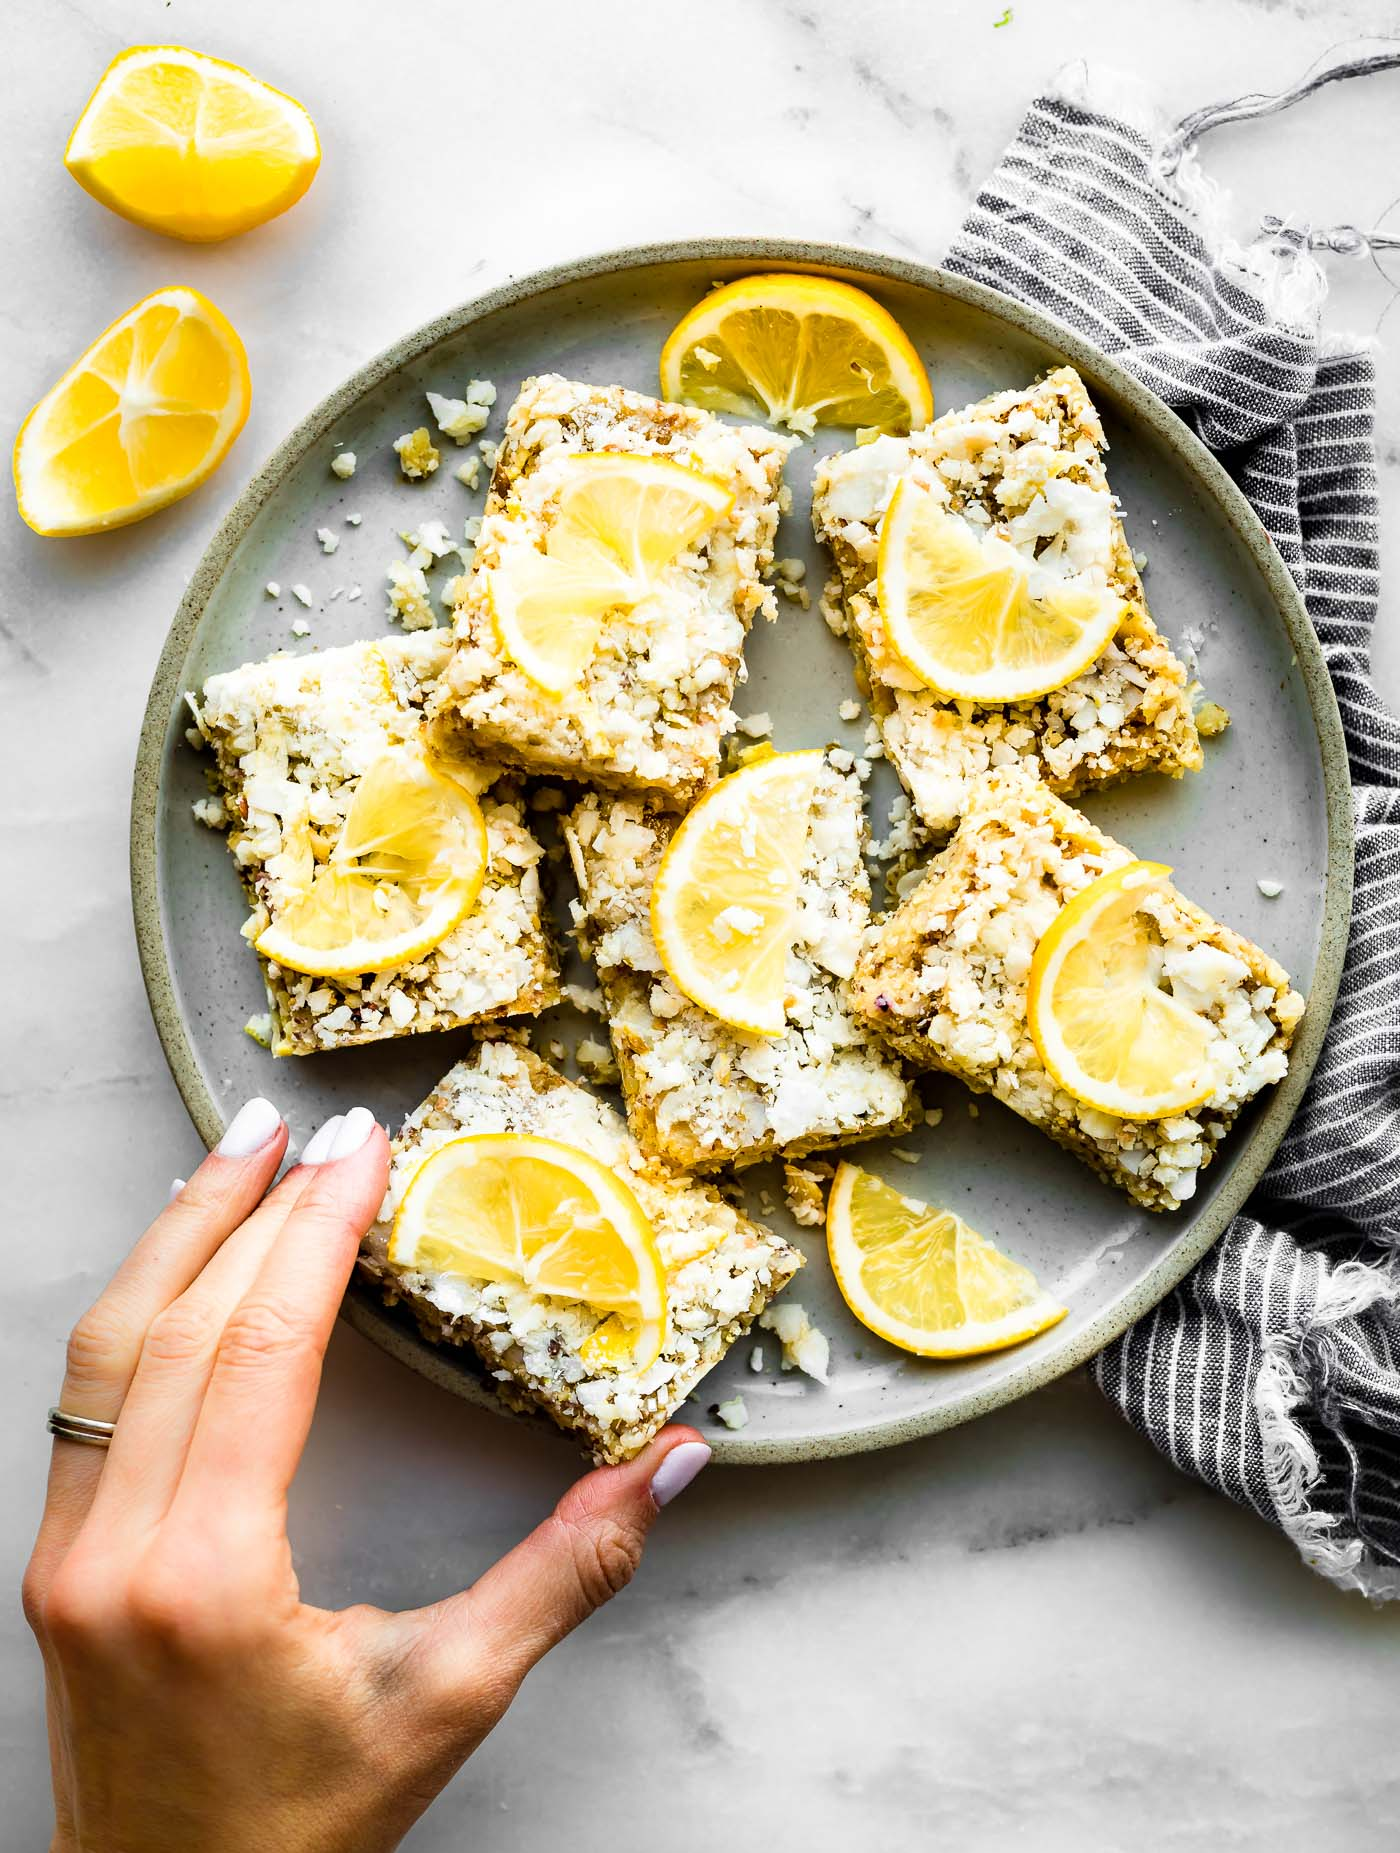 Need lower sugar snack ideas? I gotcha covered! LEMON COCONUT PALEO ENERGY BARS that are lower in sugar and NO BAKING required. Perfect for the carb conscious snacker too. Vegan friendly and keto friendly.